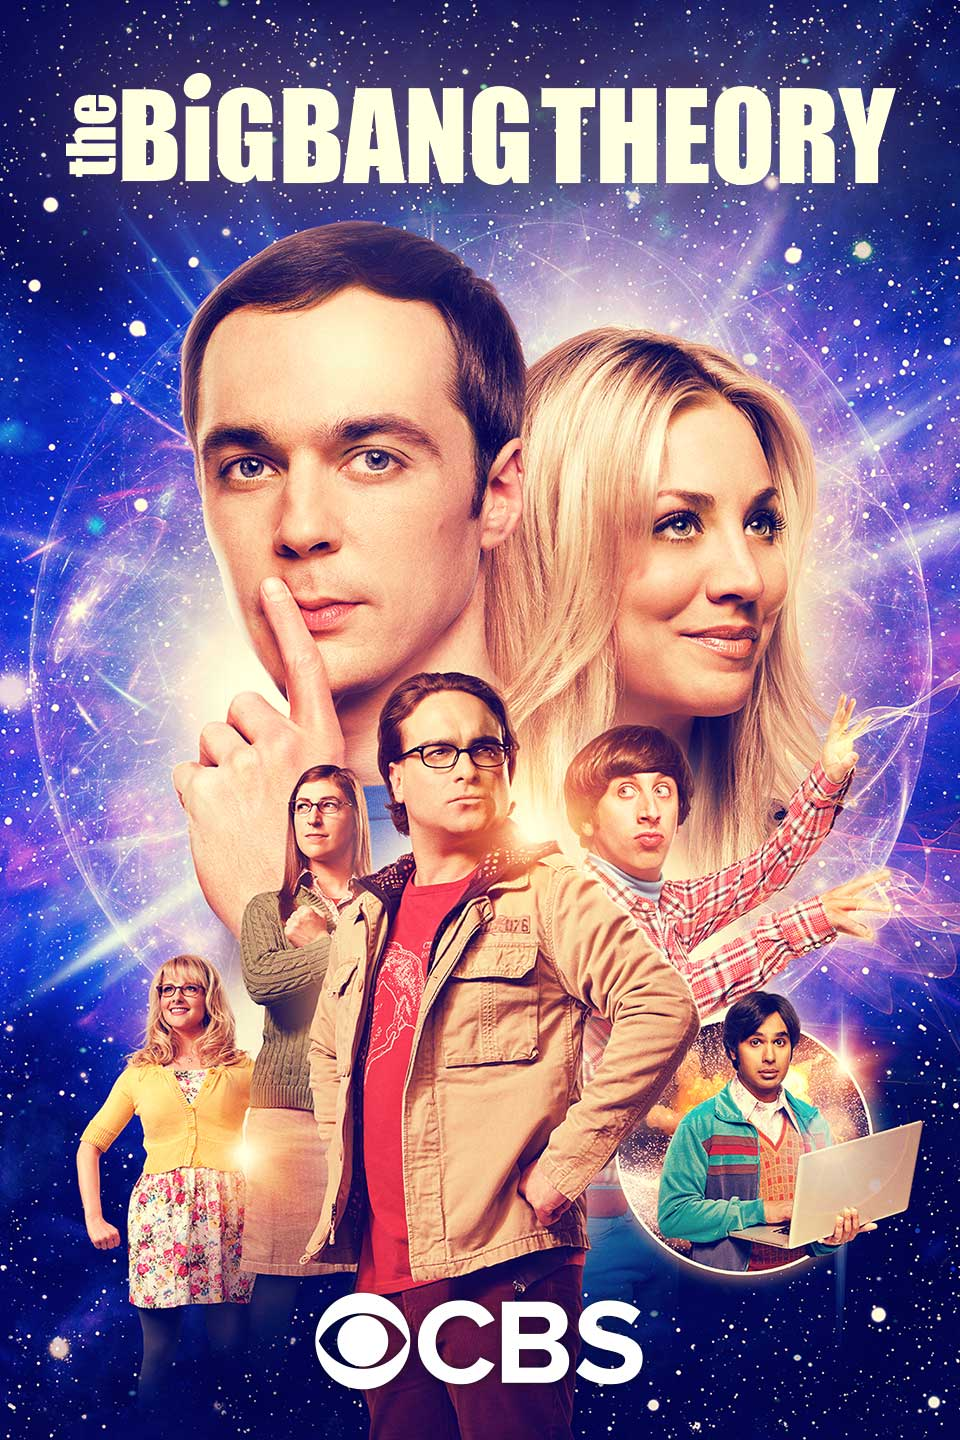 The Big Bang Theory (TV Series 2007–2019) - IMDb